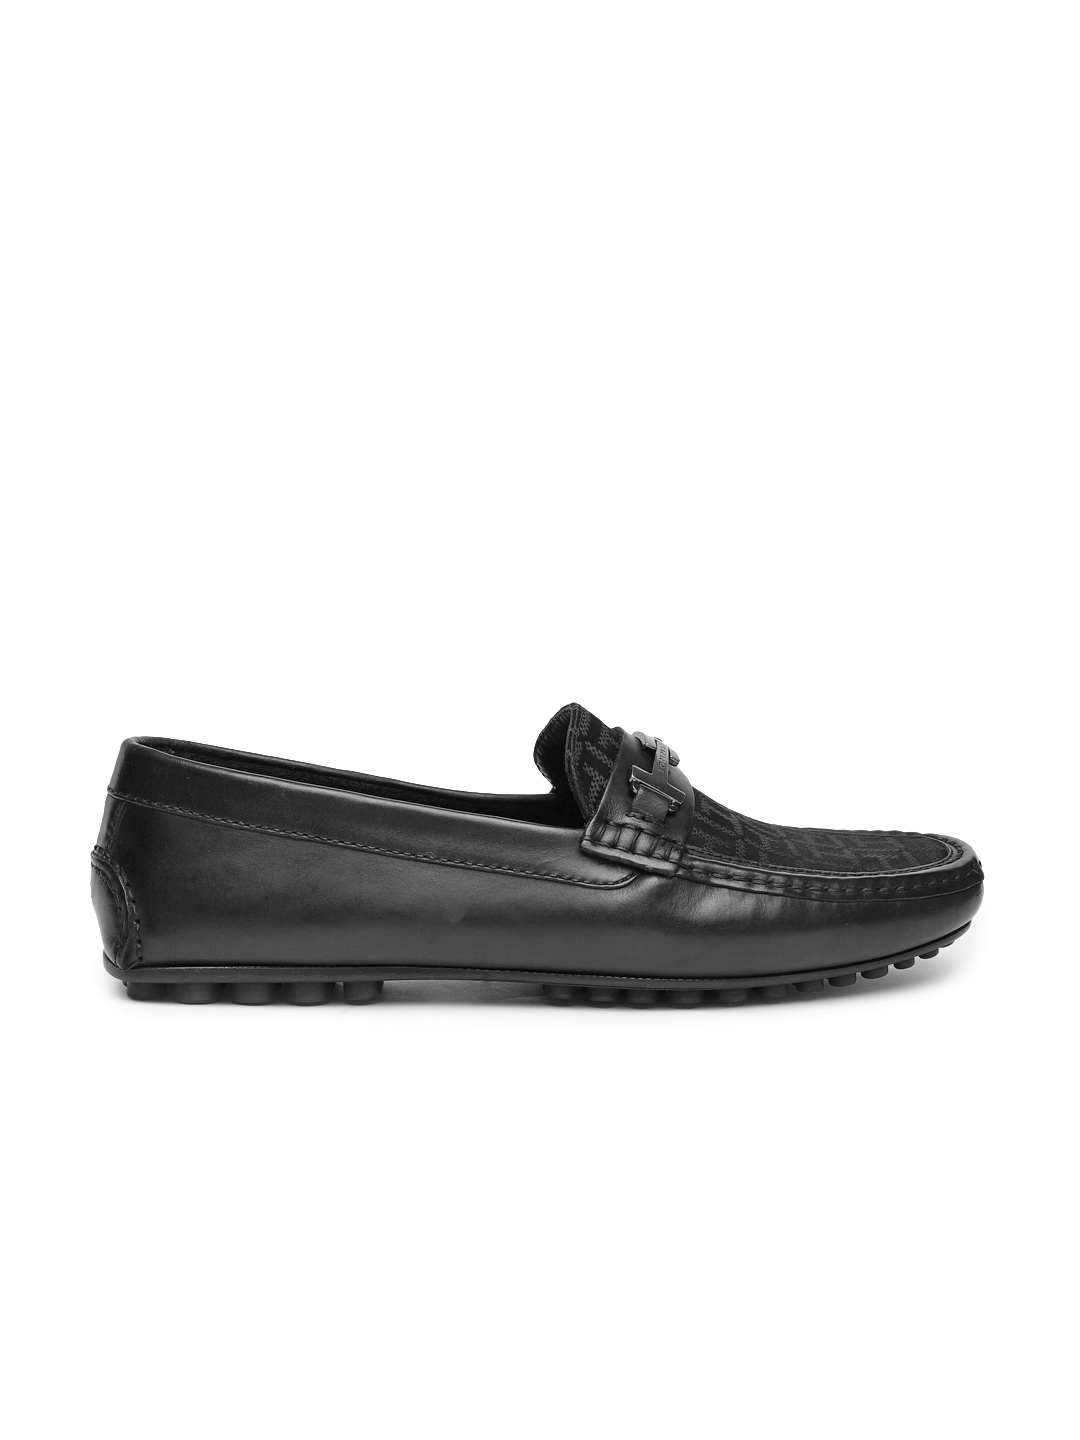 1b2242a54 Buy Tommy Hilfiger Men Black Leather Loafers - Casual Shoes for Men ...